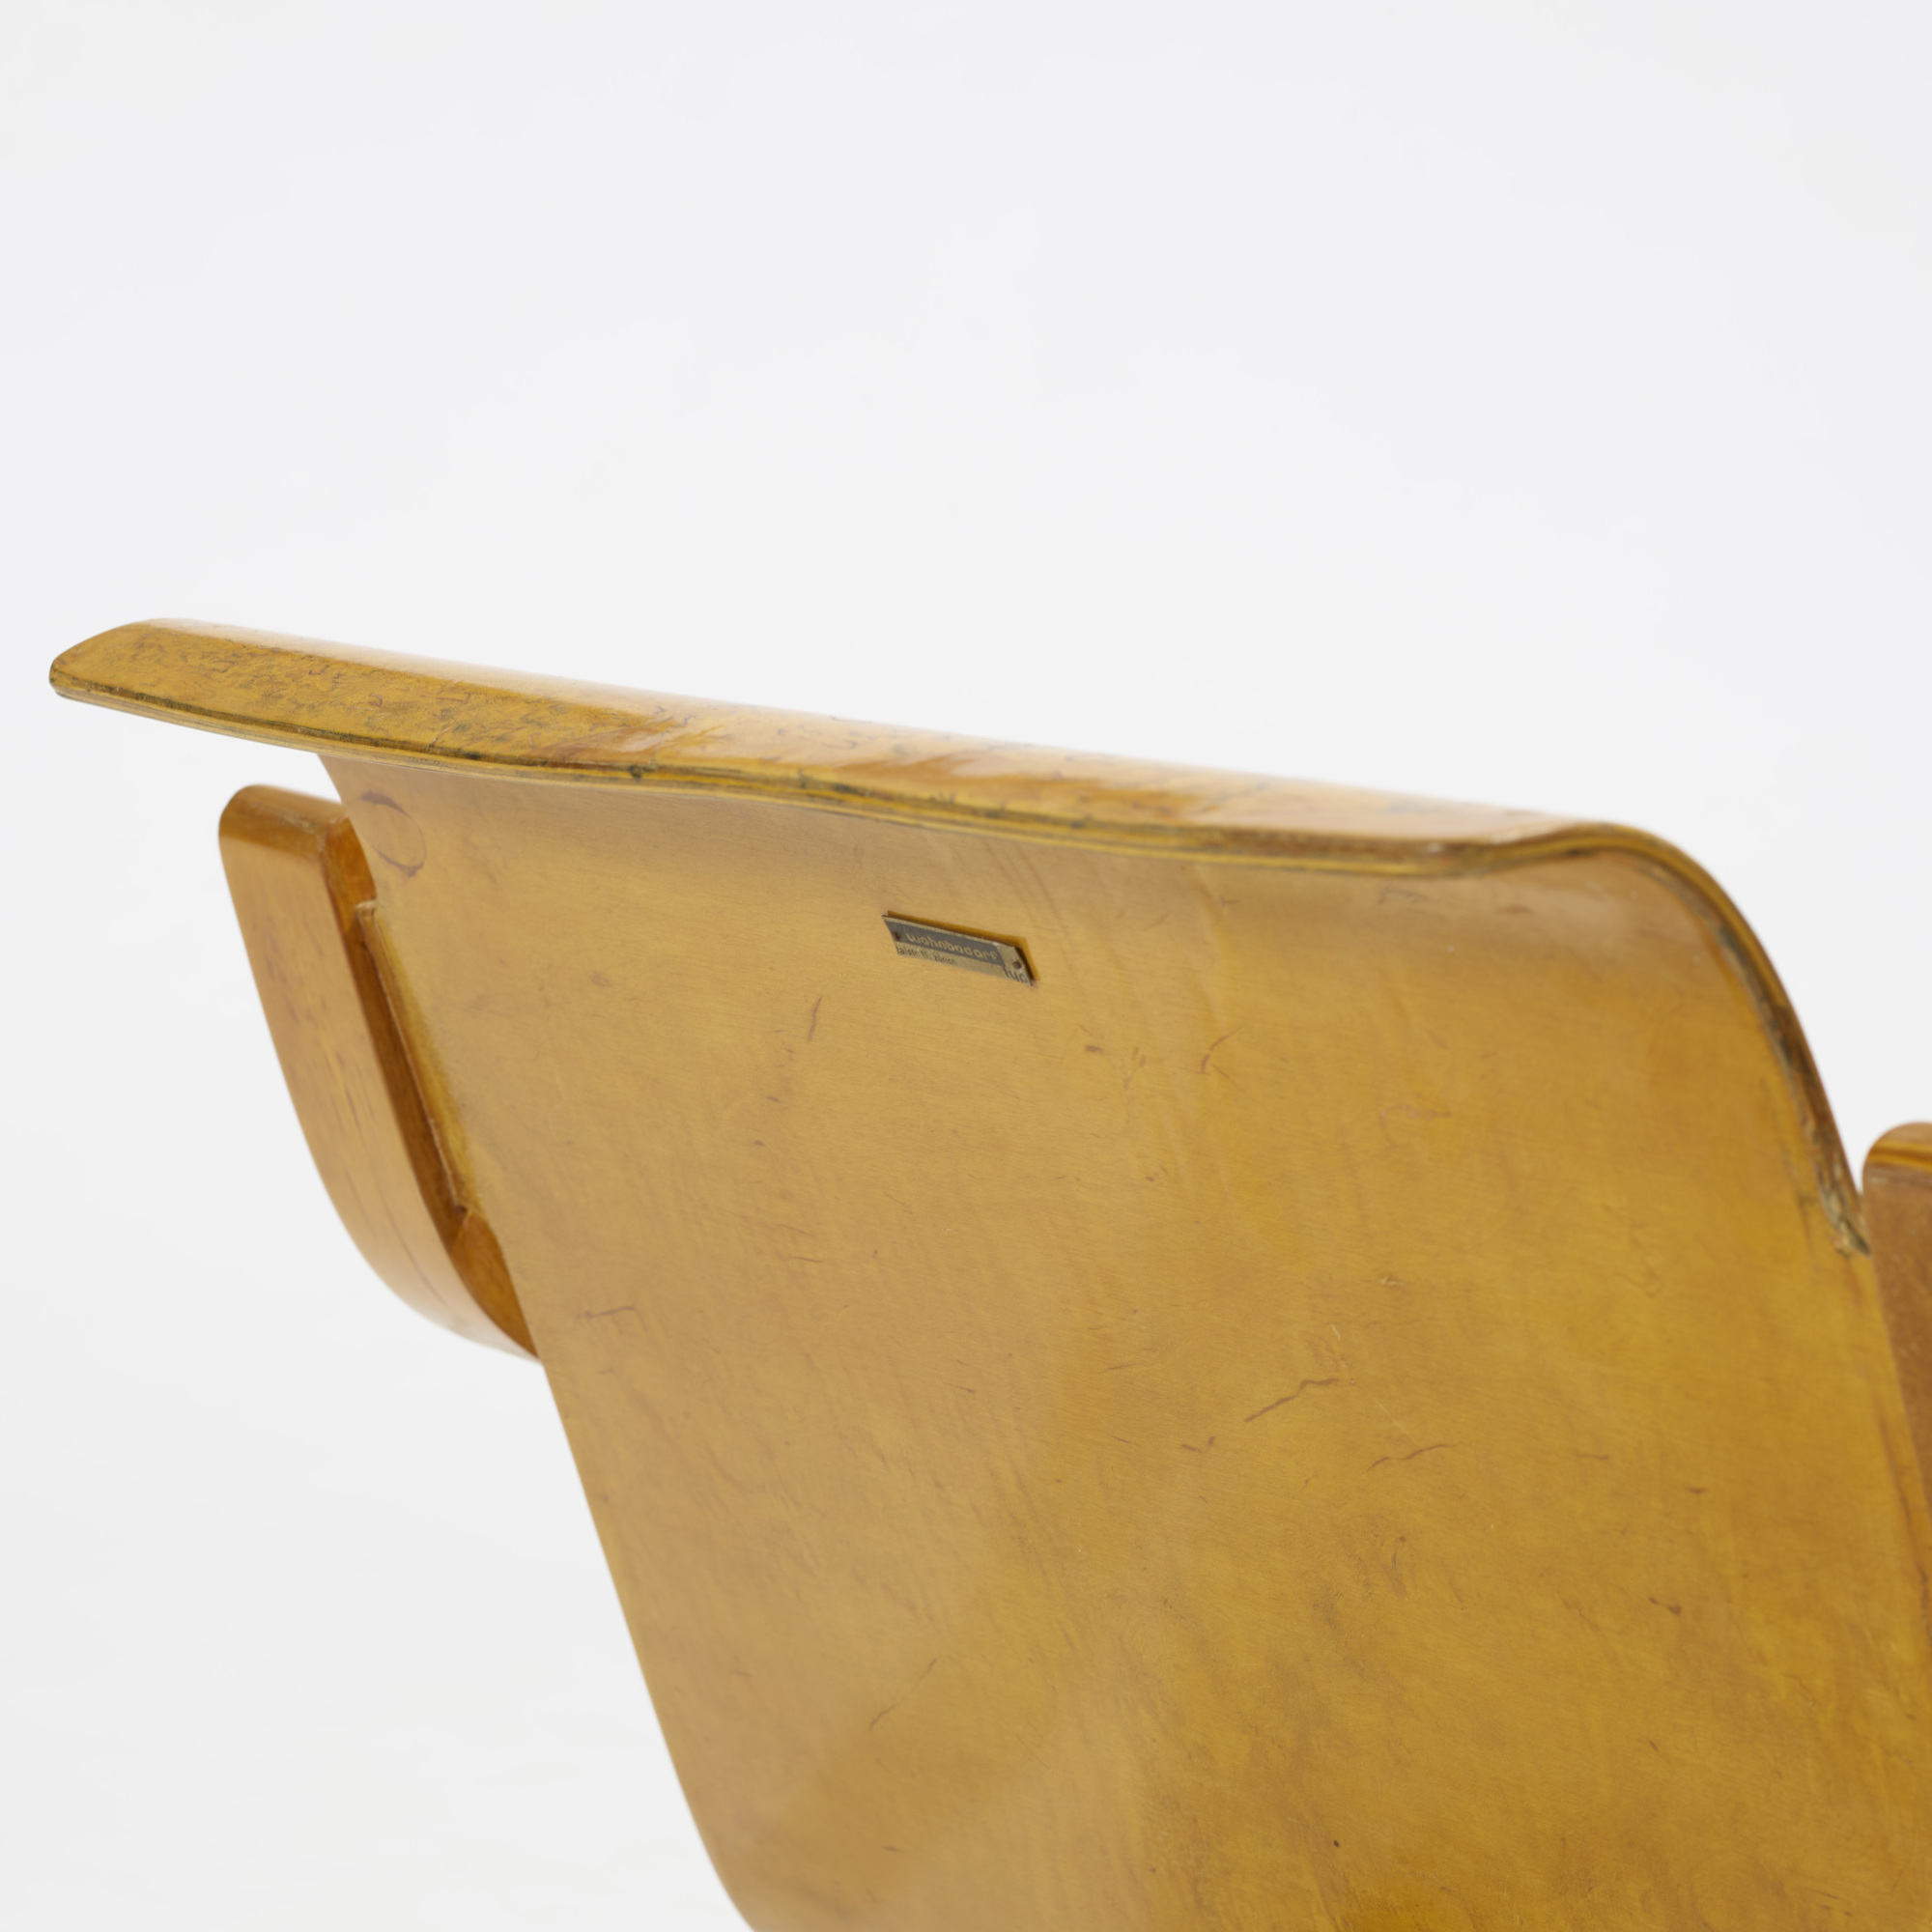 330: Alvar Aalto / Cantilever lounge chair, model 31/42 (4 of 4)